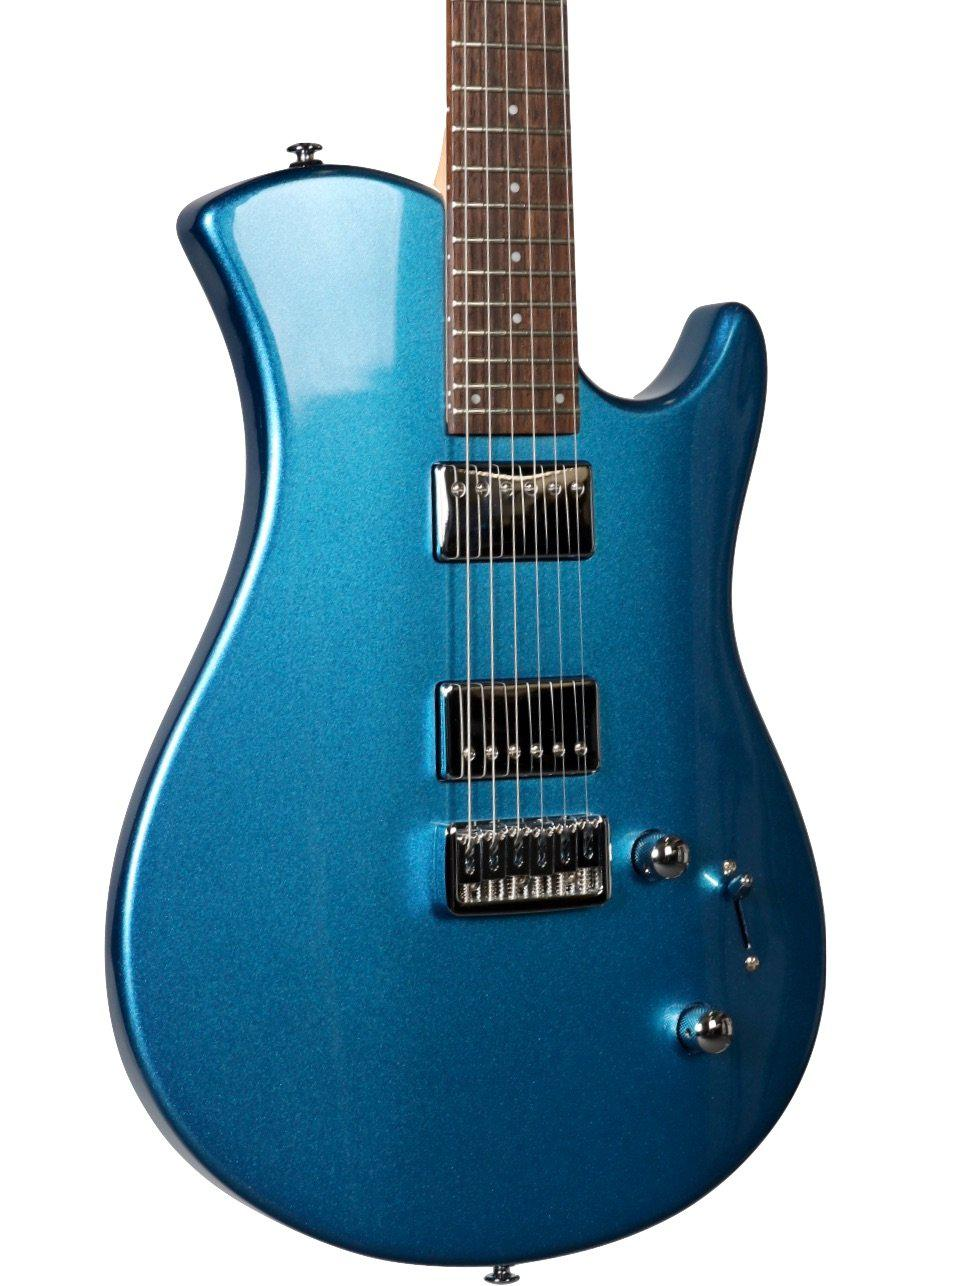 Trinity by Relish Guitars Blue Metallic #TR200258 - Relish Guitars - Heartbreaker Guitars